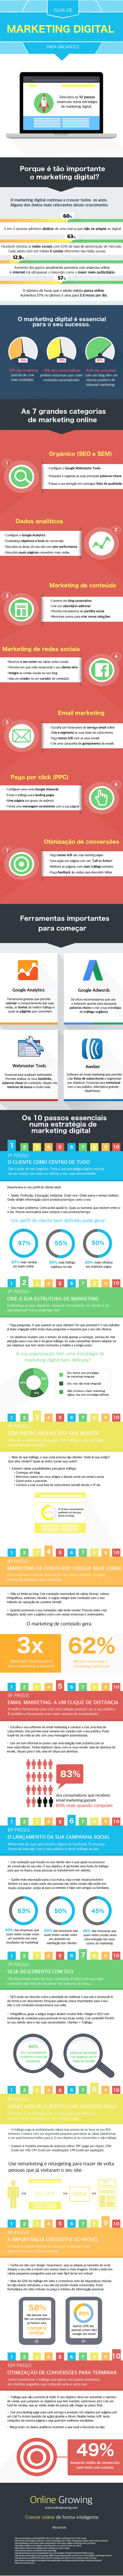 Infográfico Marketing Digital